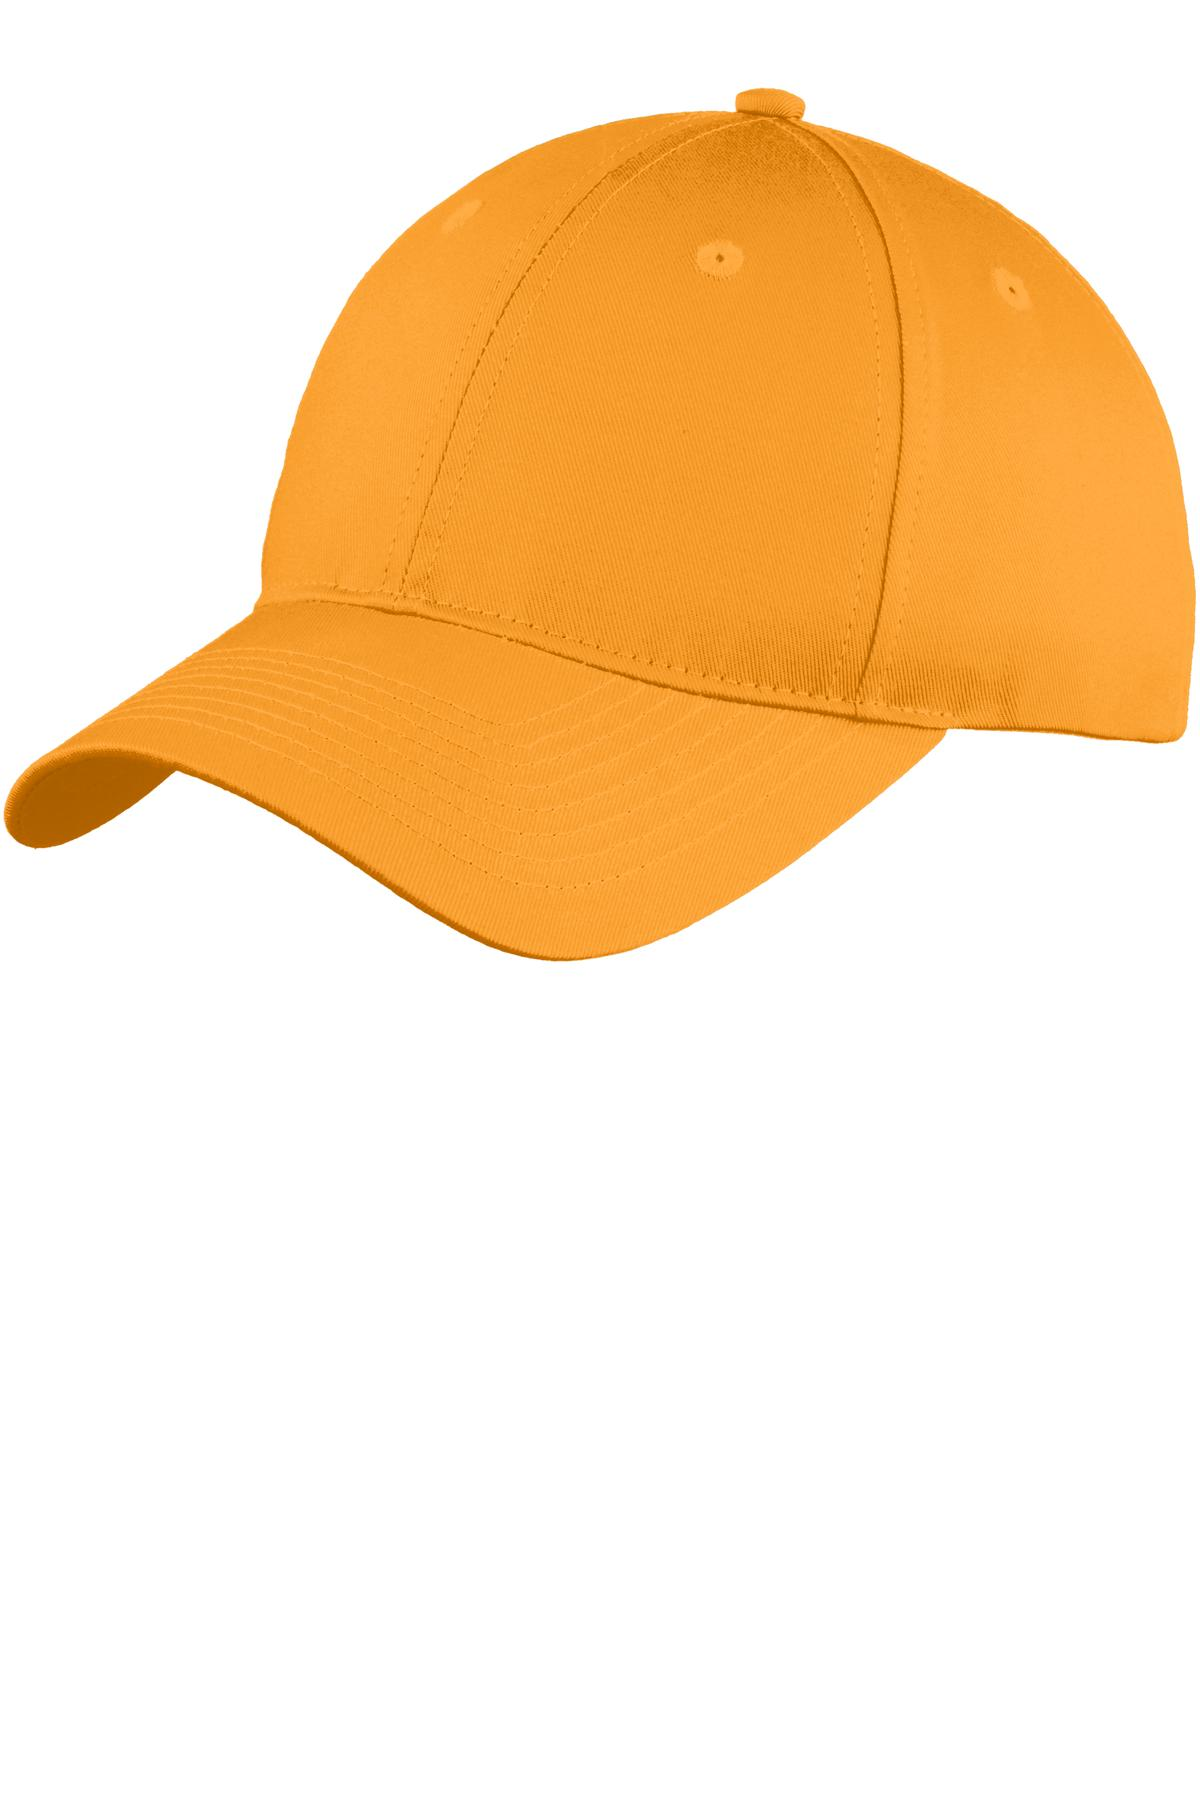 Port & Company® Six-Panel Unstructured Twill Cap. WITH YOUR COMPANY NAME OR LOGO